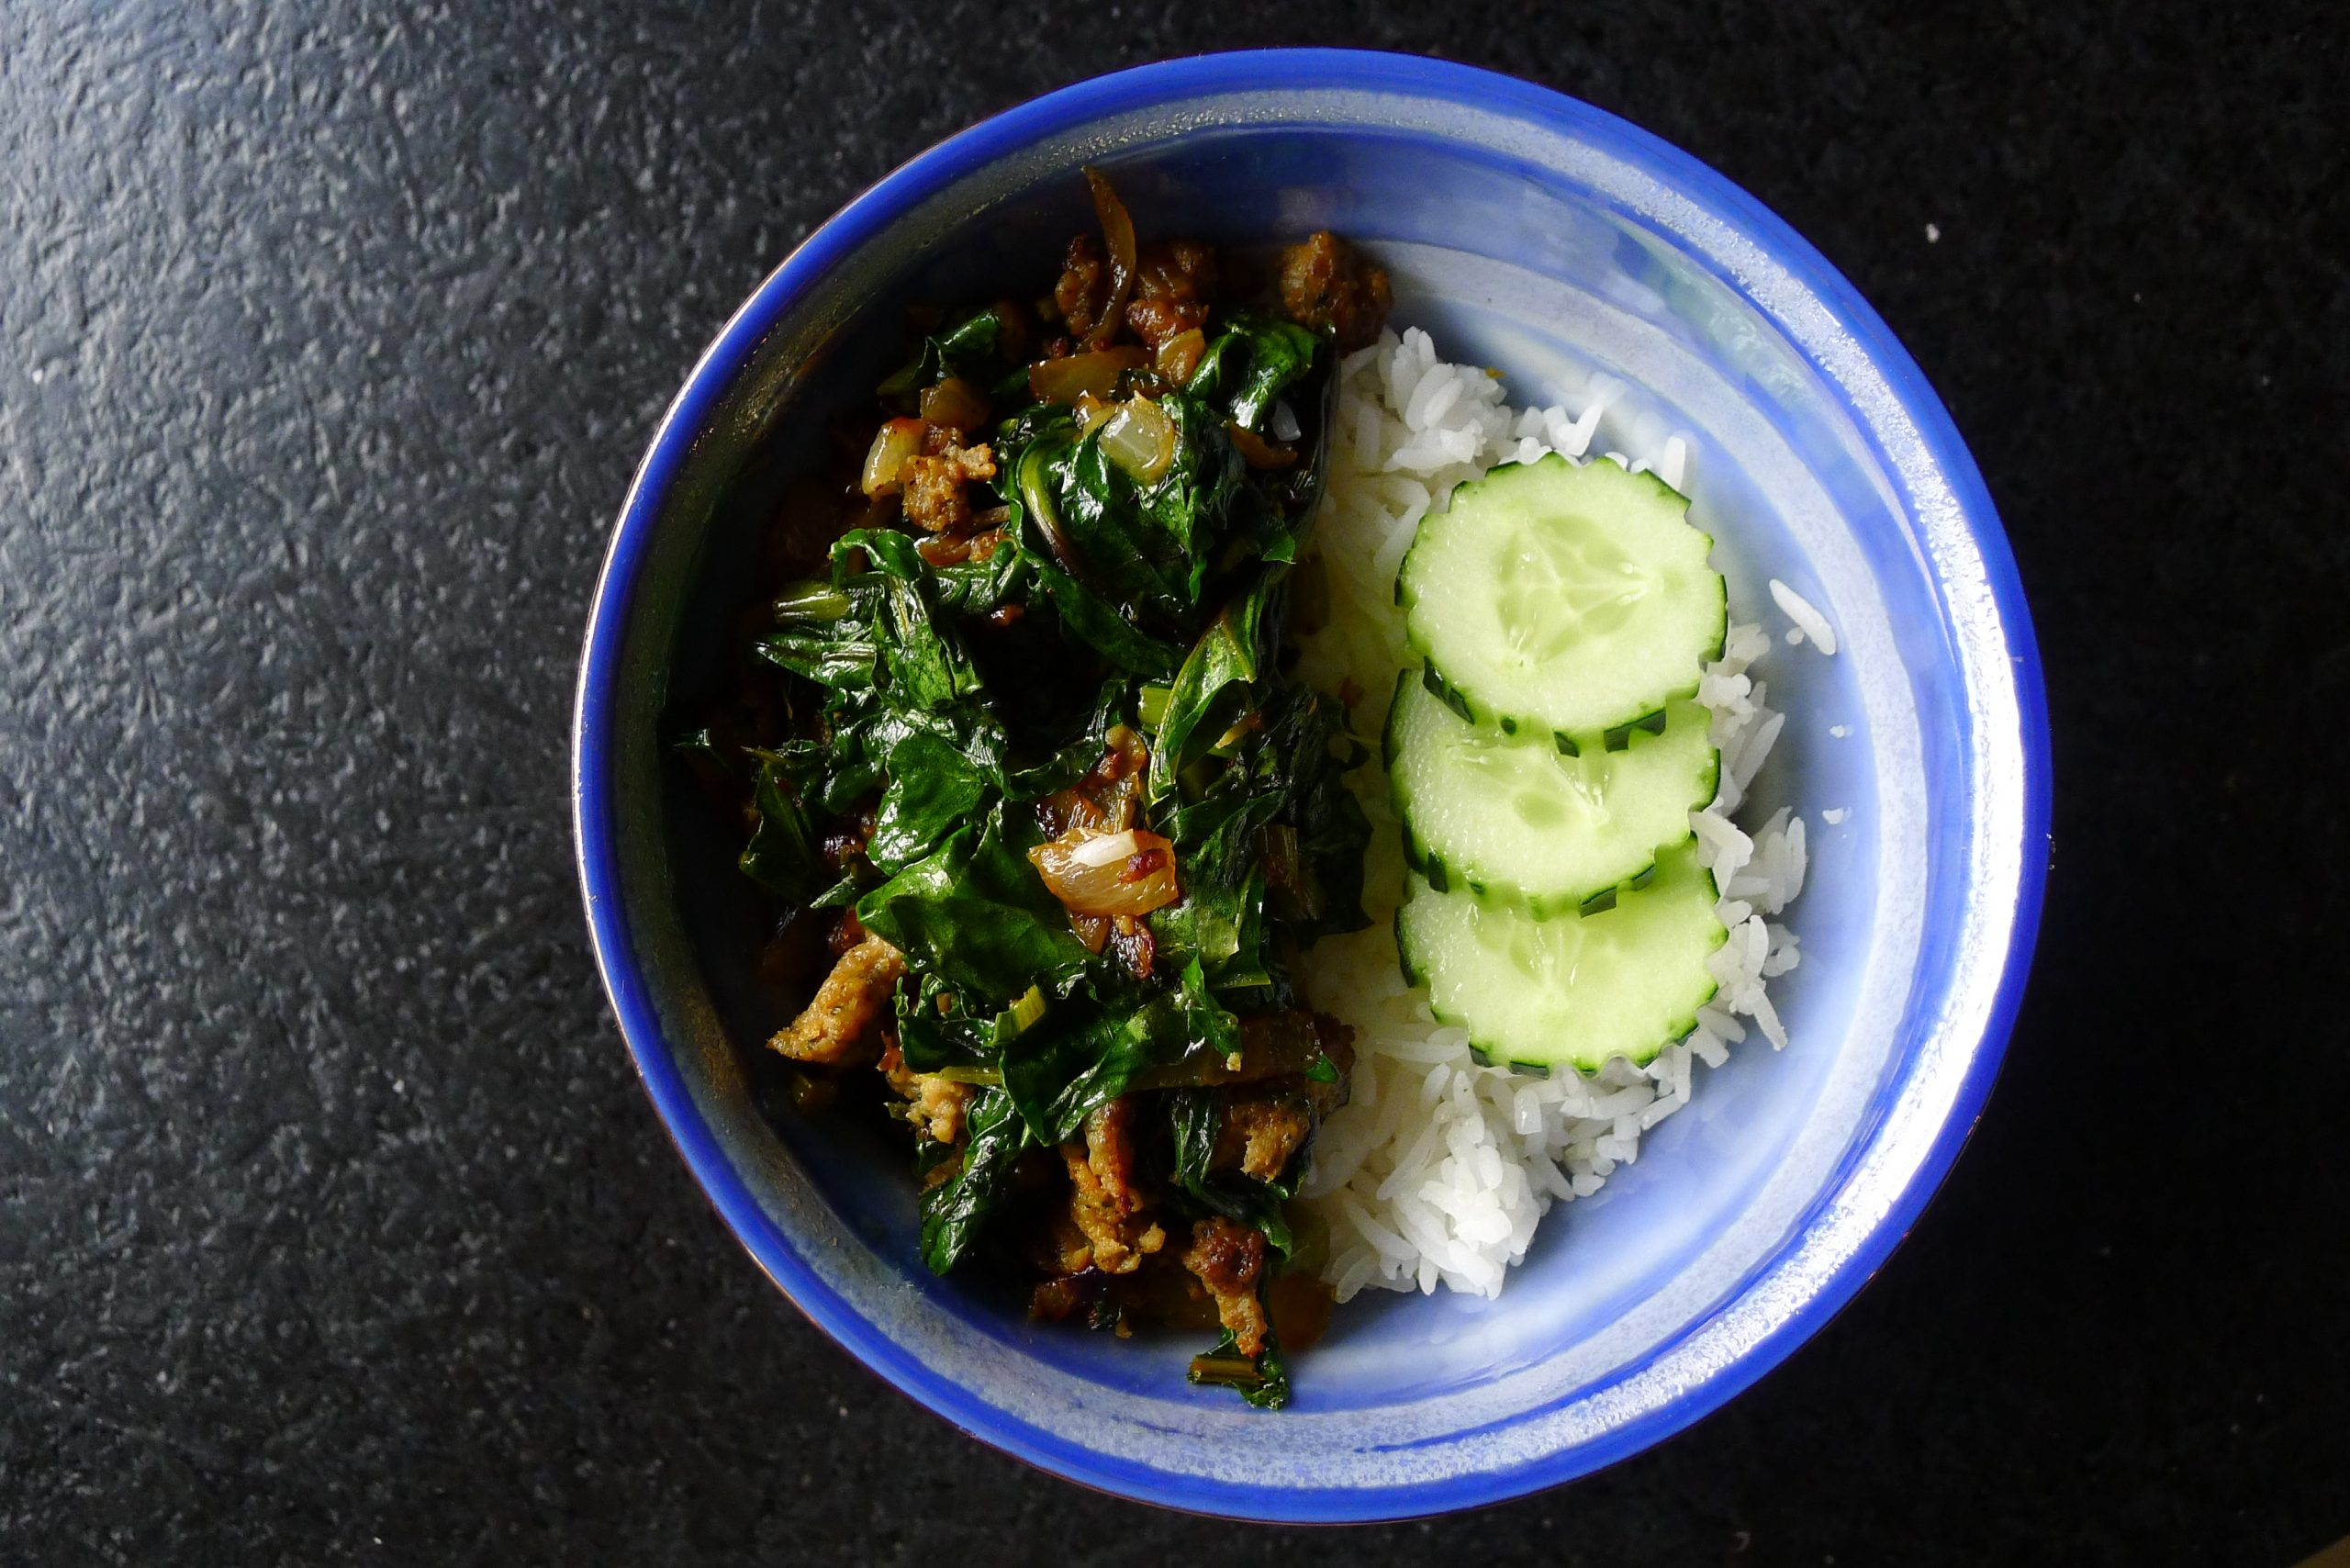 beet greens and sausage over rice